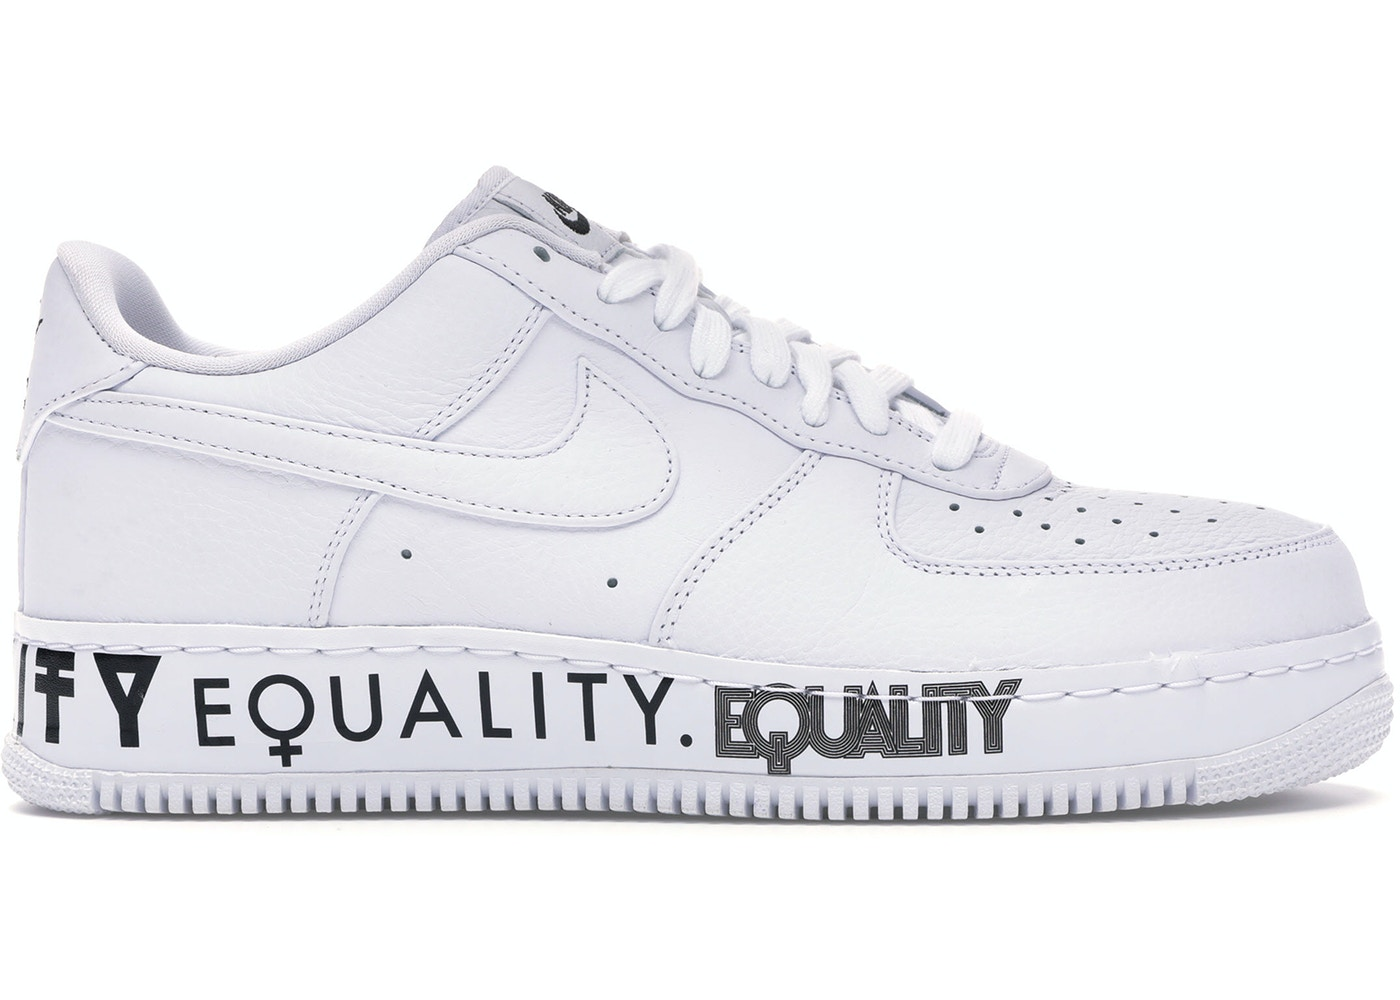 d5281b987f4 Buy Nike Air Force 1 Shoes & Deadstock Sneakers